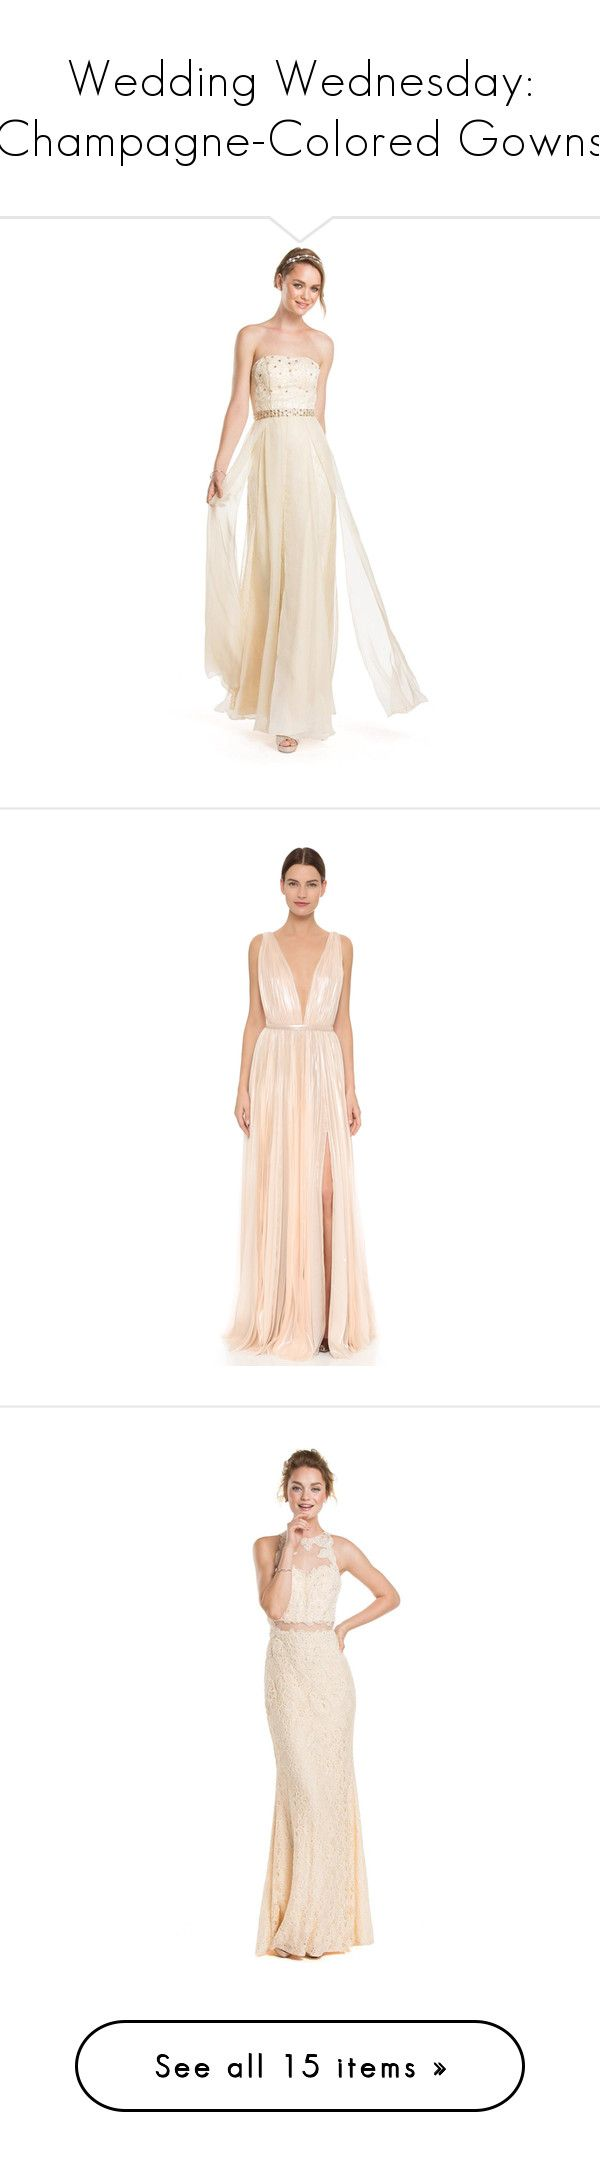 """Wedding Wednesday: Champagne-Colored Gowns"" by polyvore-editorial ❤ liked on Polyvore featuring weddingwednesday, champagnegowns, dresses, gowns, champagne, formal dresses, long formal dresses, formal gowns, party dresses and formal evening dresses"